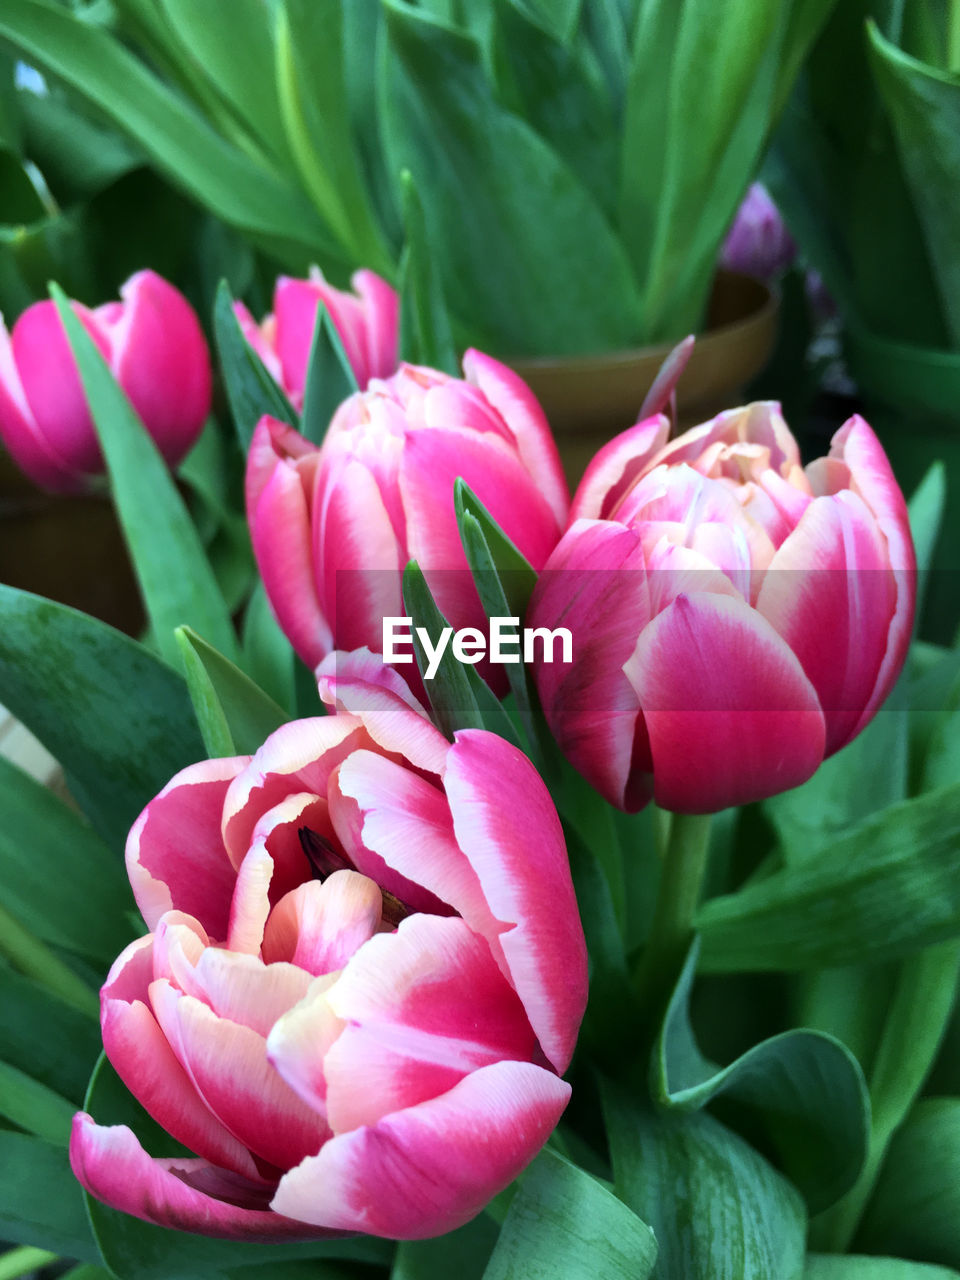 flower, petal, fragility, nature, beauty in nature, freshness, pink color, flower head, plant, growth, close-up, tulip, no people, leaf, outdoors, rose - flower, day, blooming